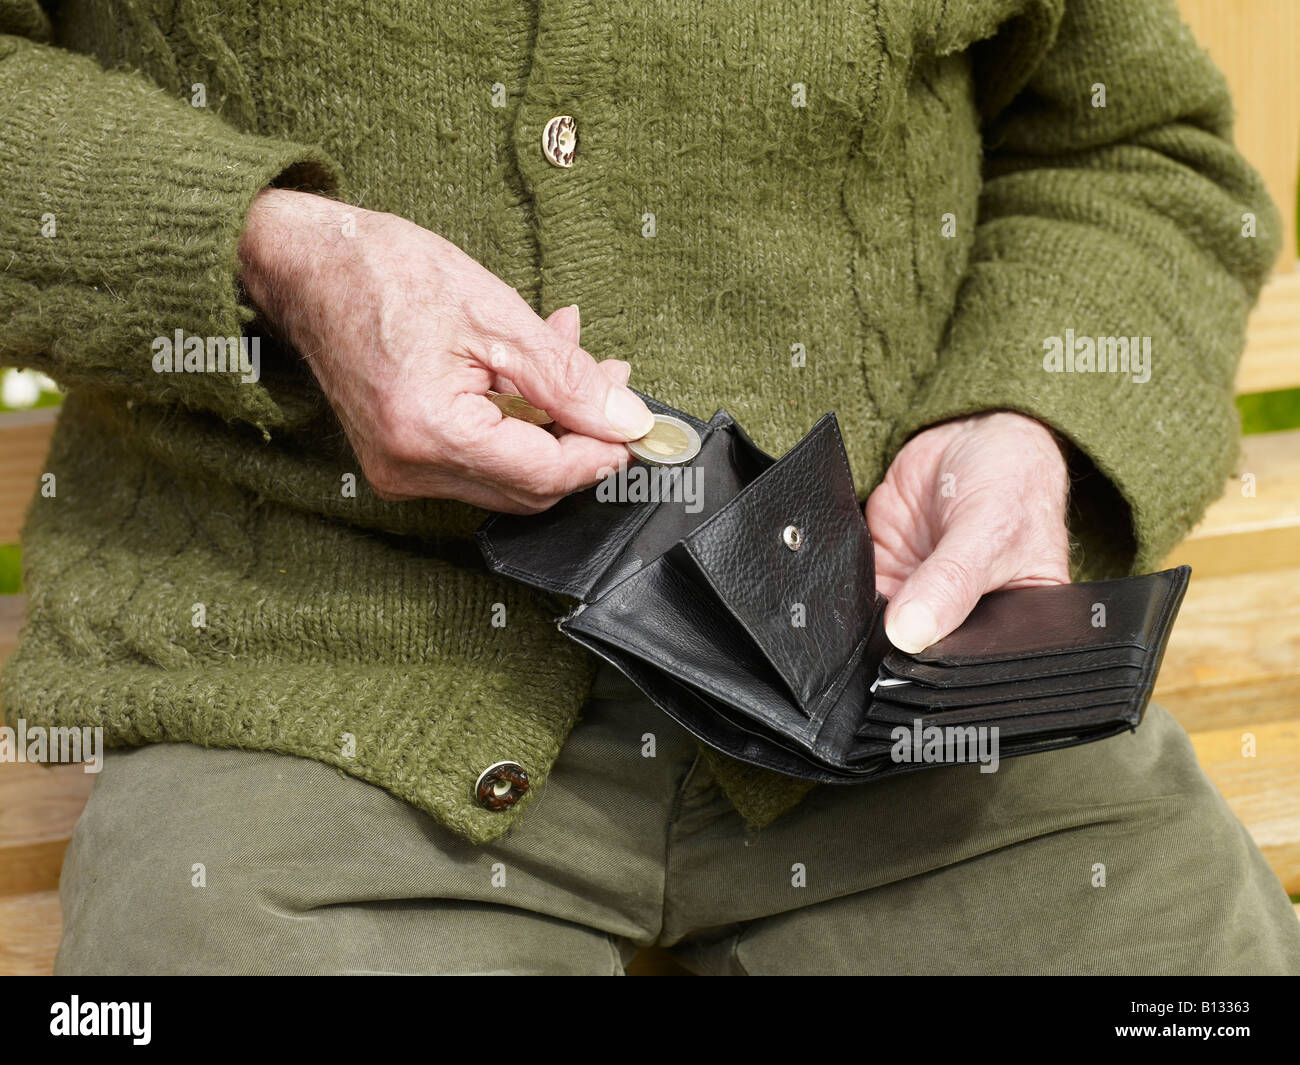 old hands of a senior counting less money in a purse - Stock Image